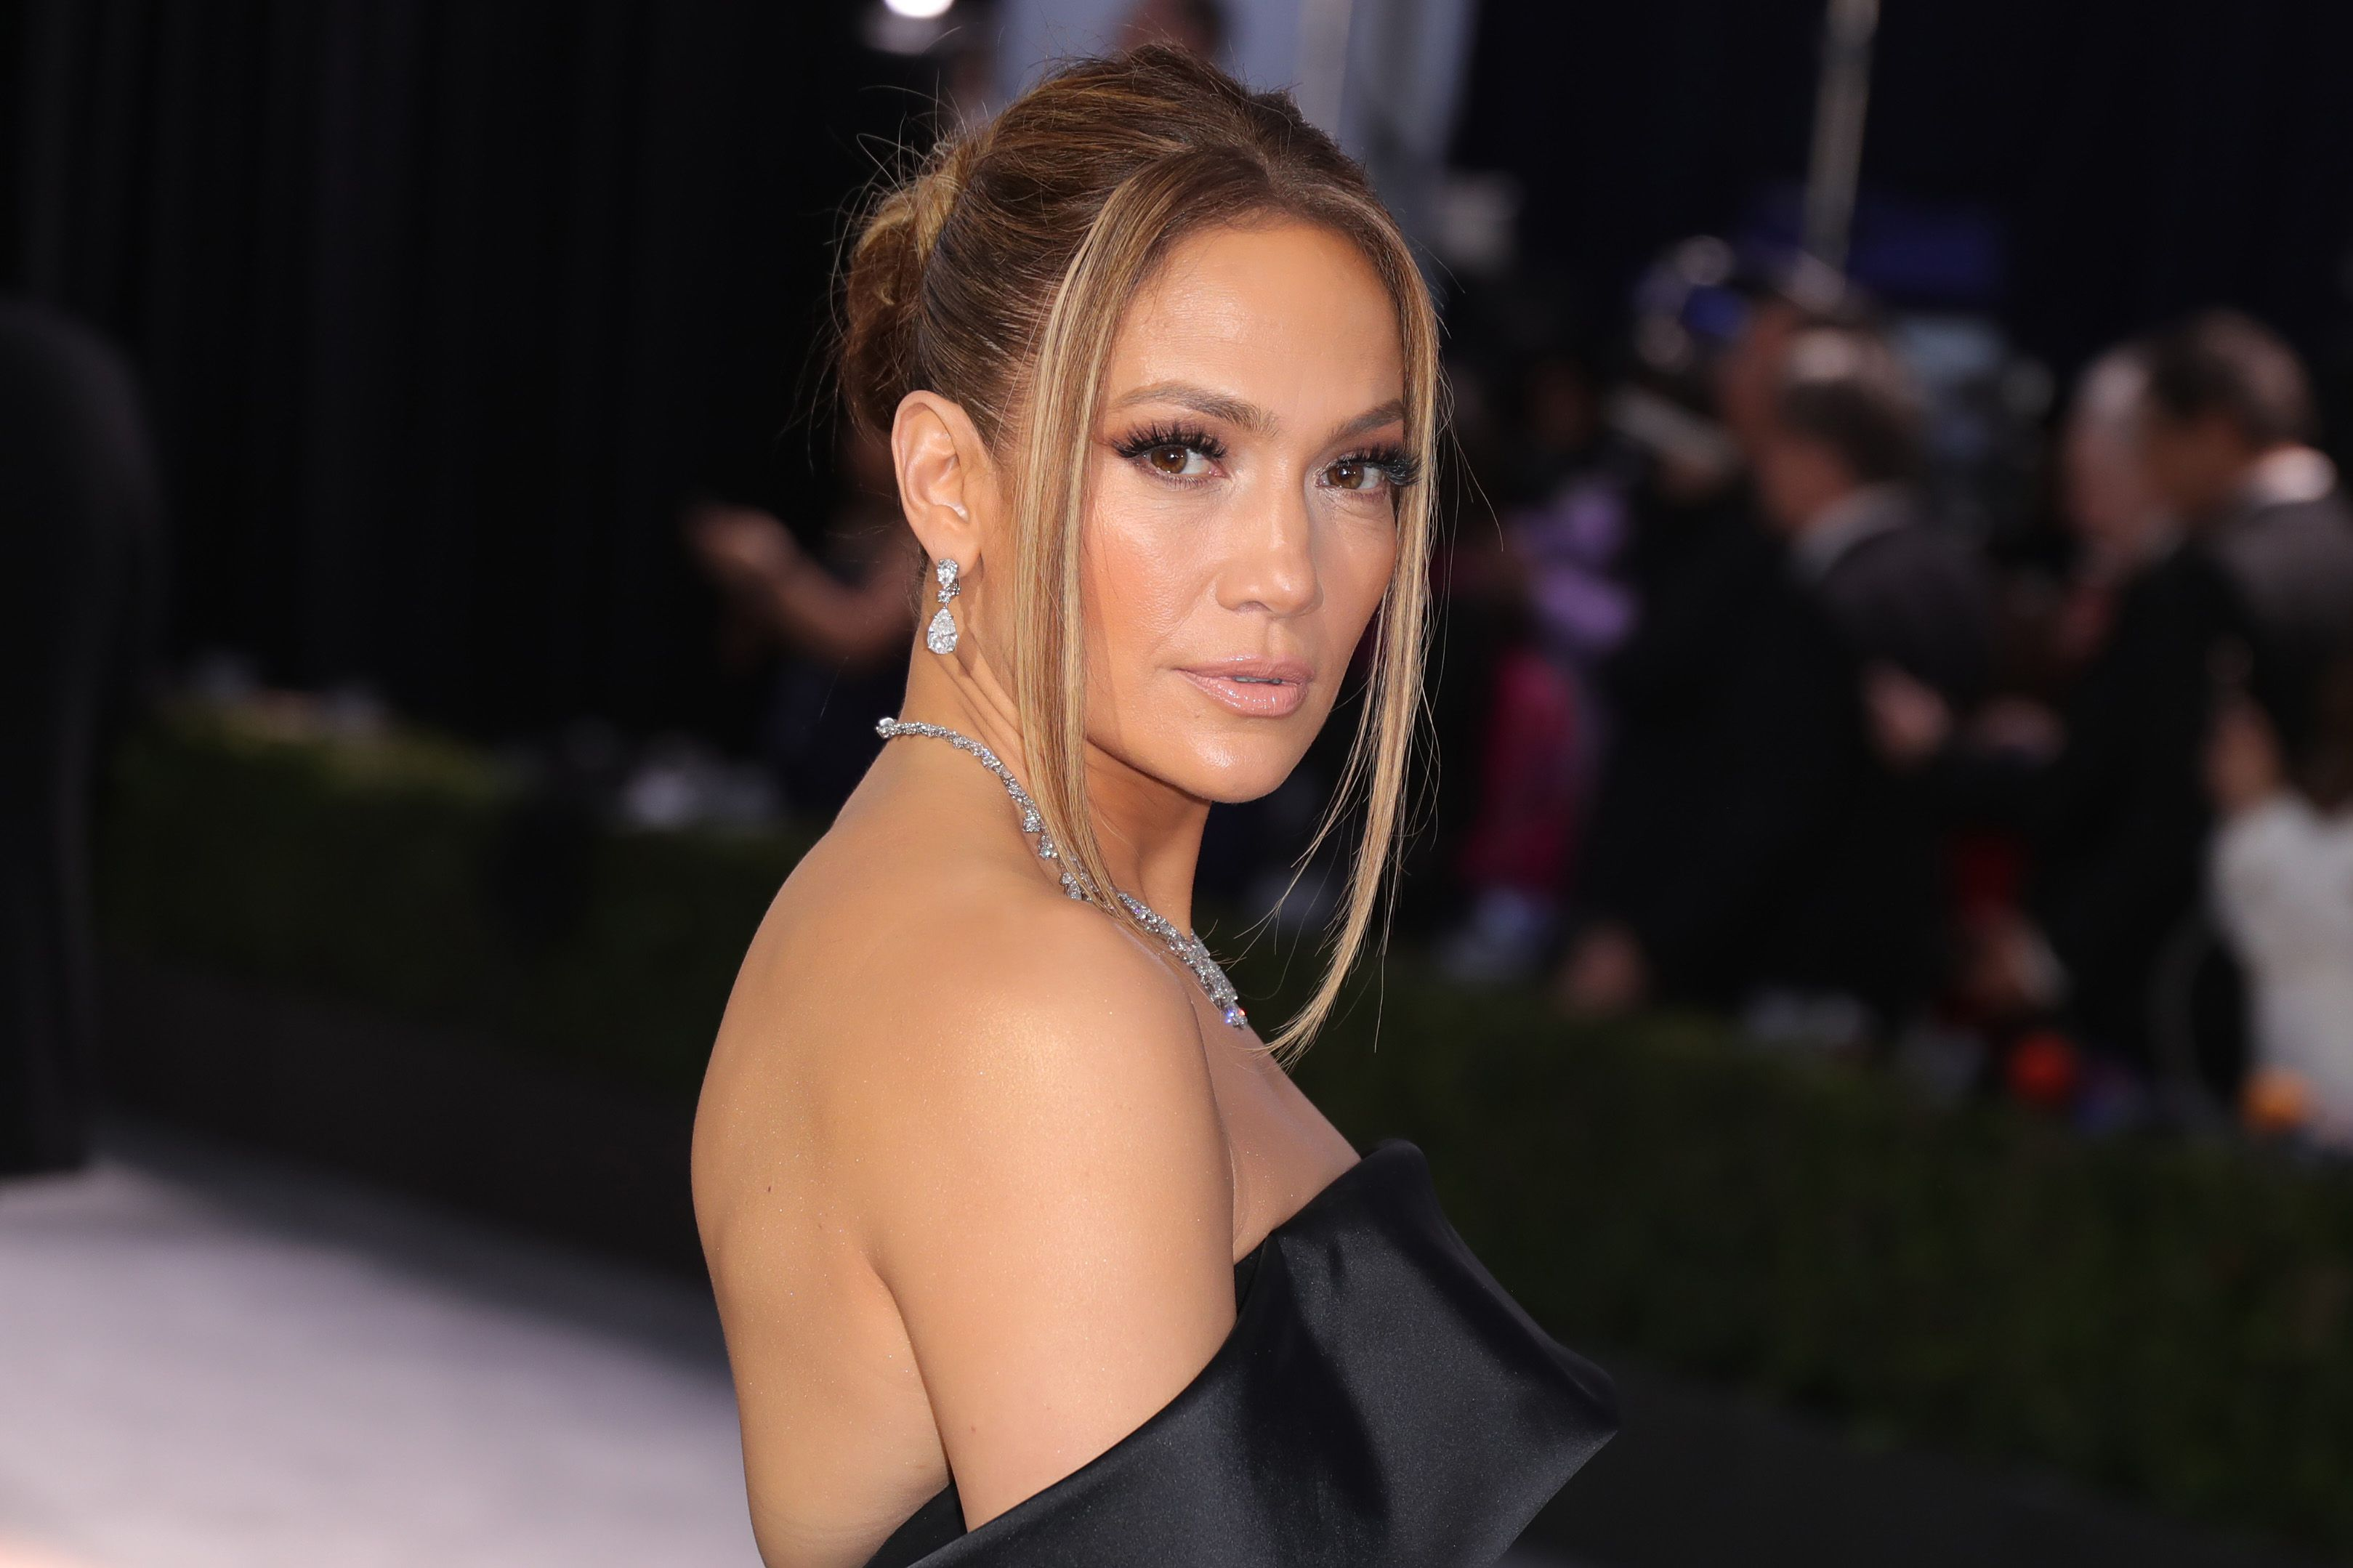 We're obsessed with Jennifer Lopez's new wavy bob hairstyle